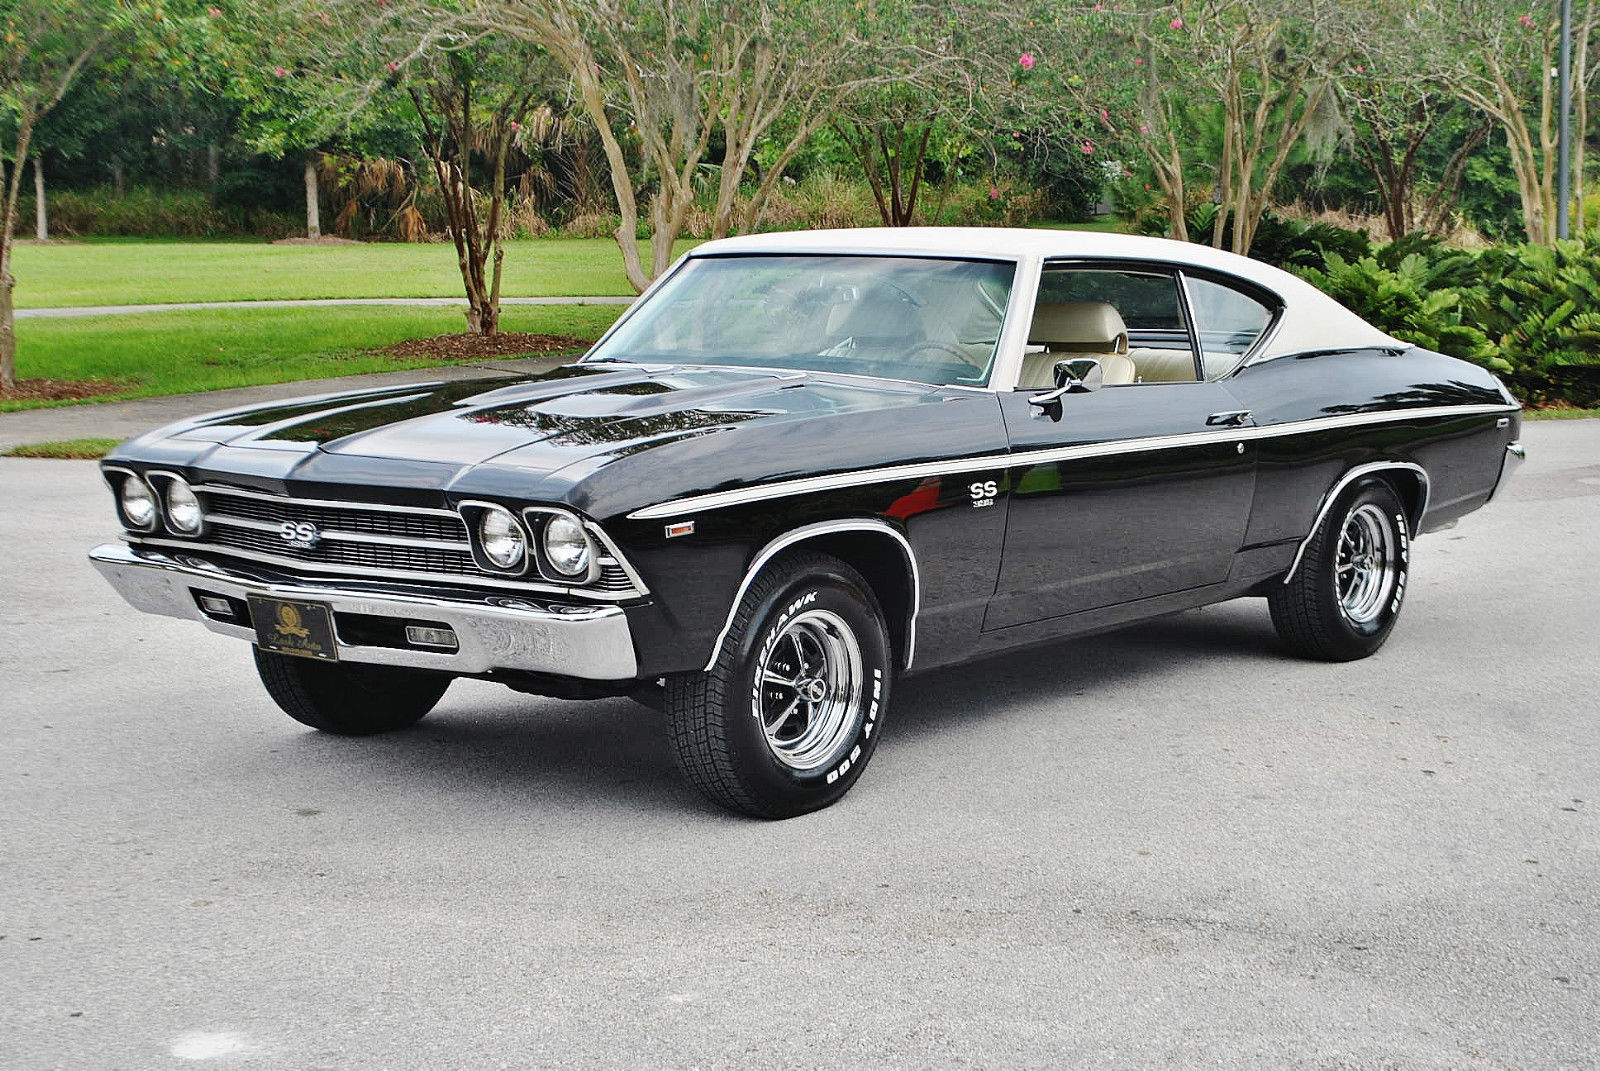 Real deal 4 speed 1969 chevrolet chevelle ss 396 matching numbers magnificent classic - 69 chevelle ss 396 images ...